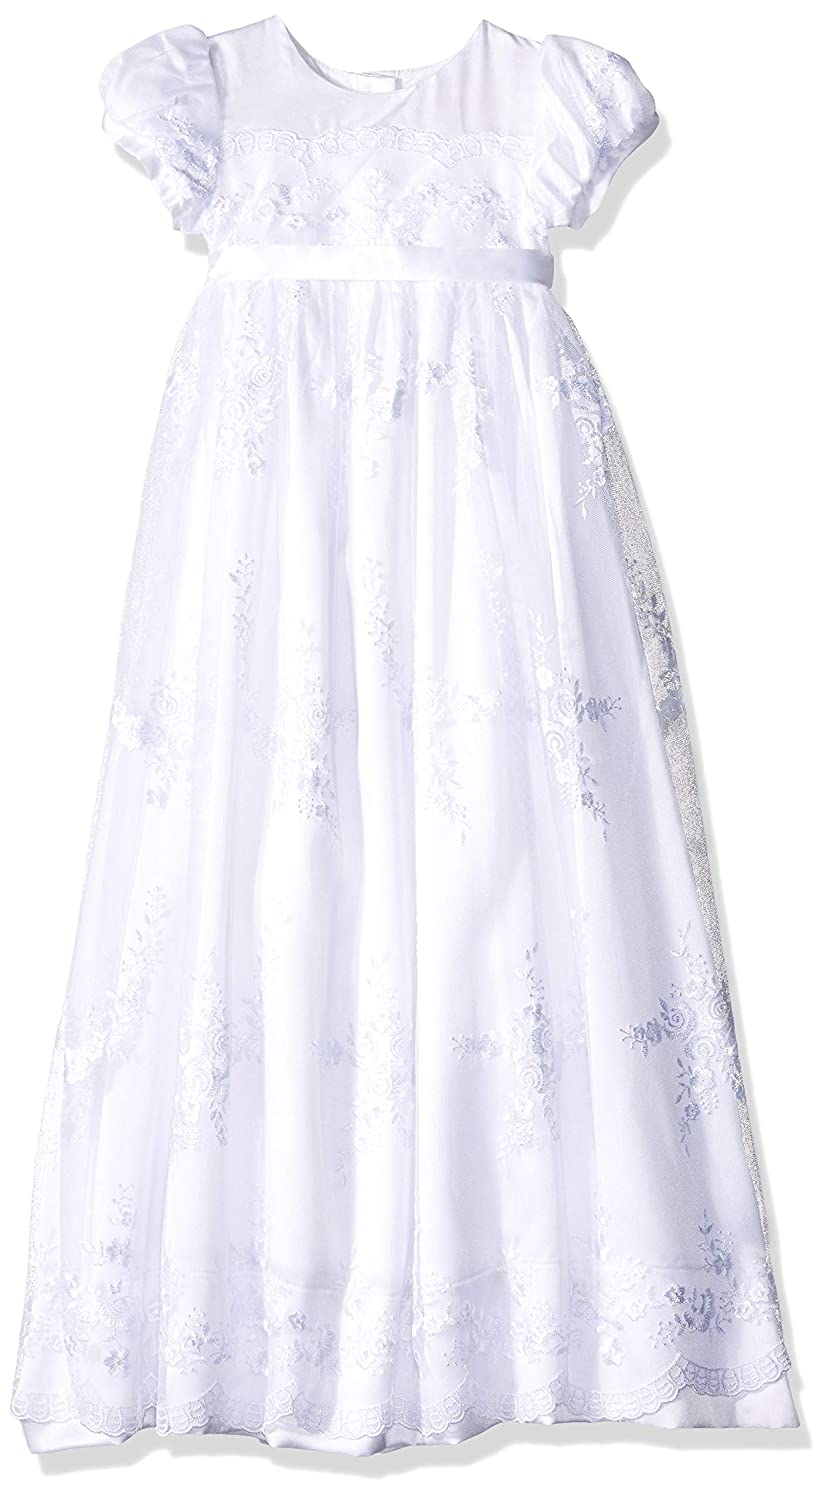 NIMBLE Baby Girls Newborn Christening Embroidered Gown Dress Outfit with Headband,0-15M